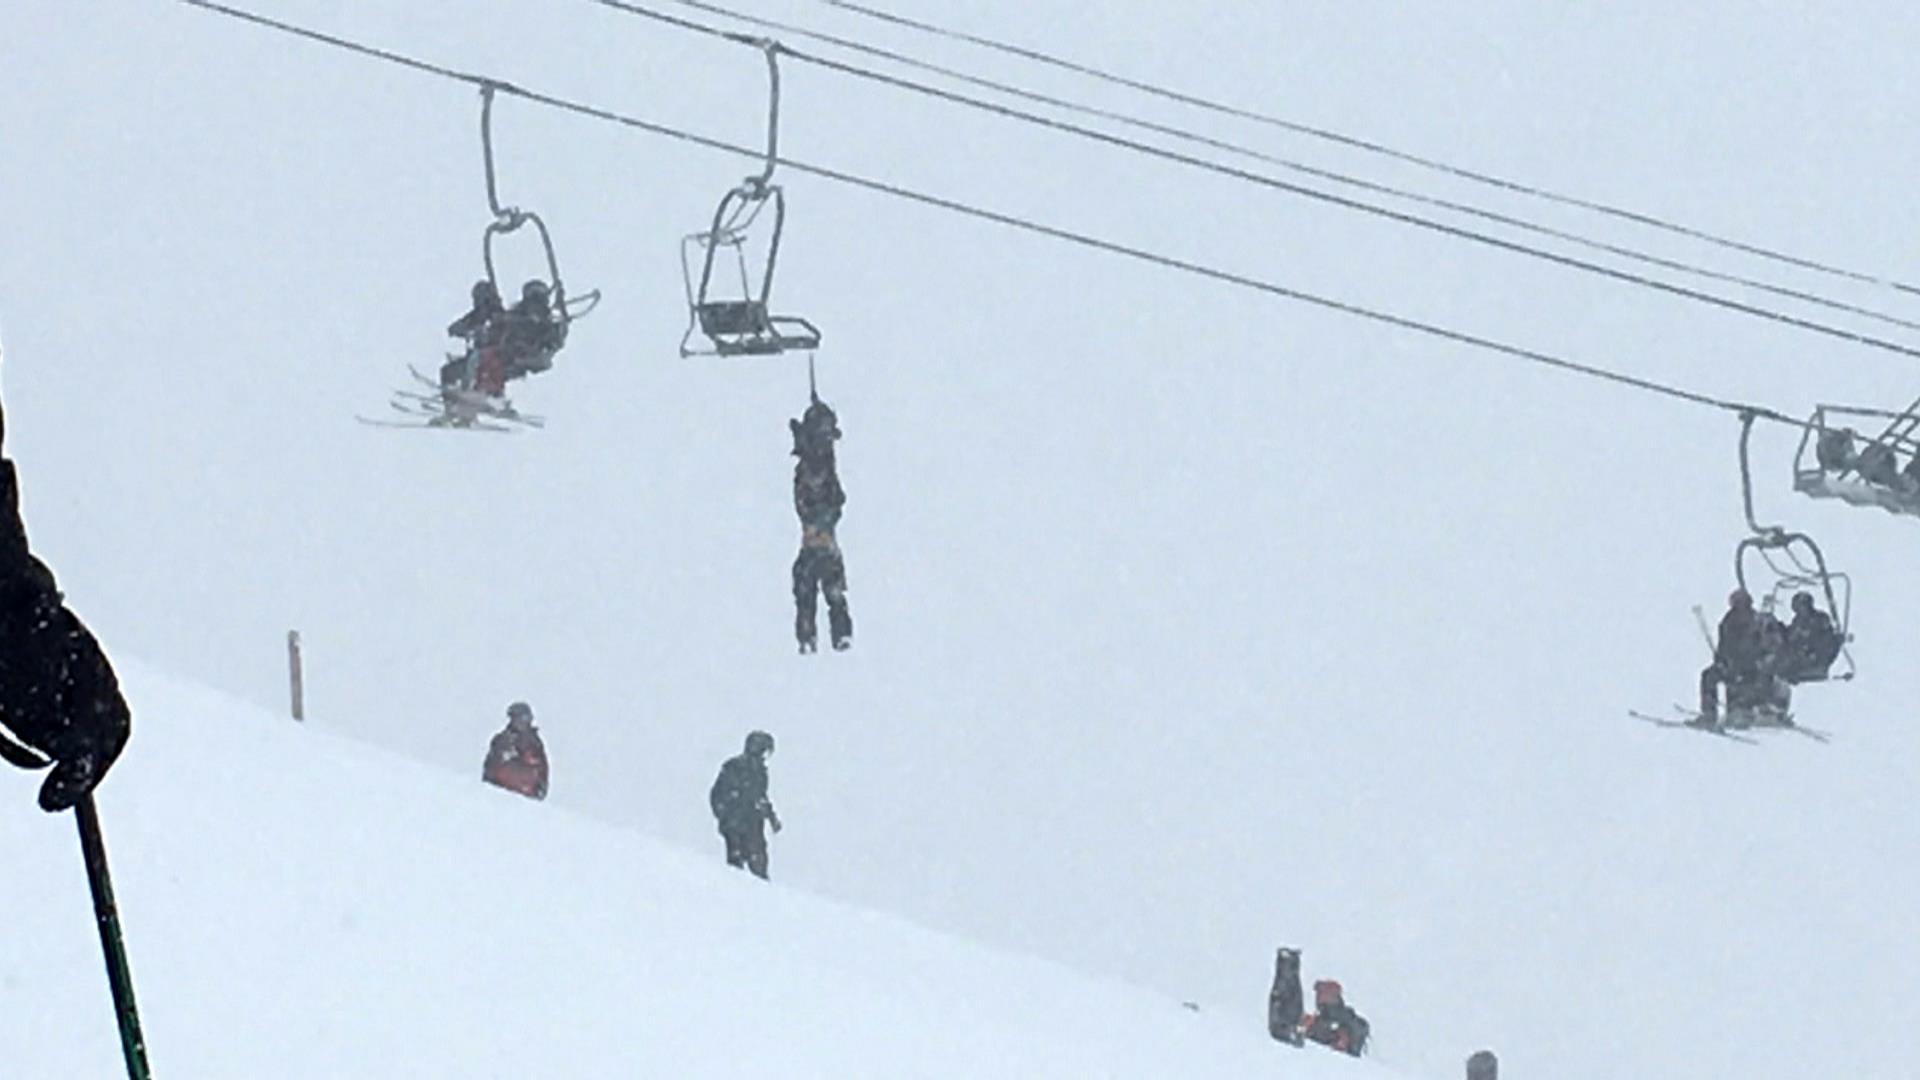 Man dangling unconscious from ski lift rescued by daring slackliner ...